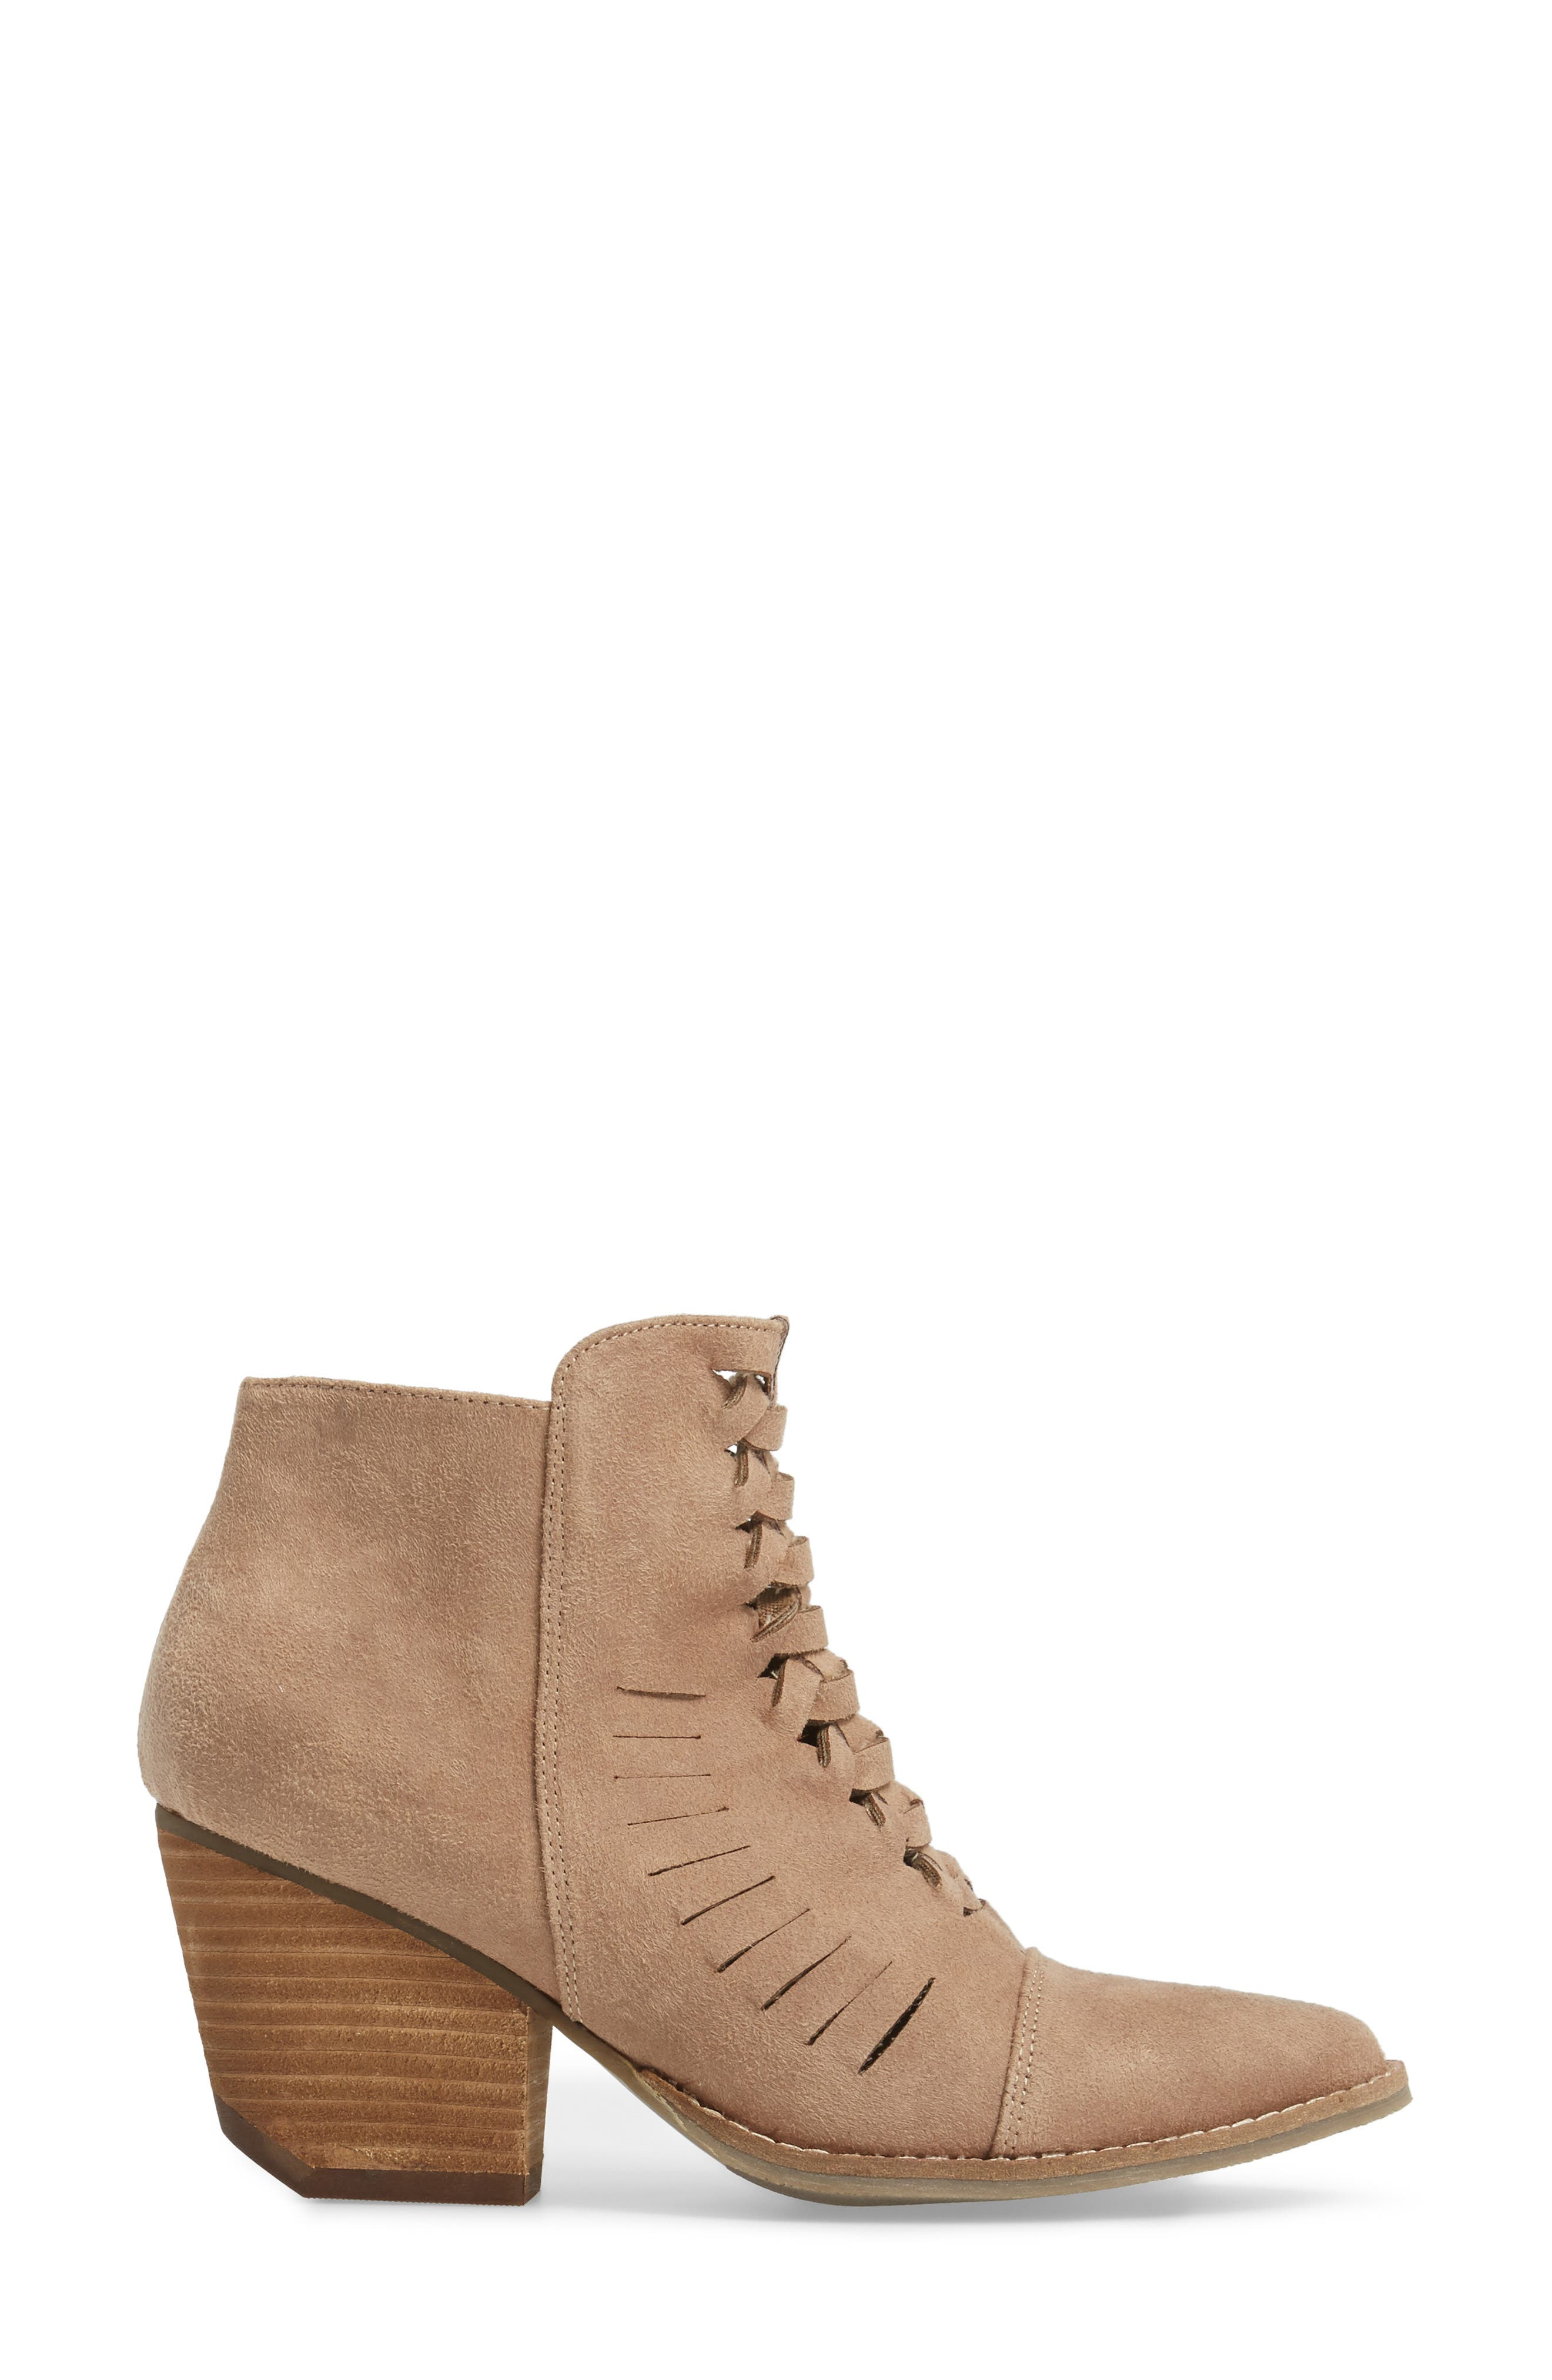 Ally Woven Bootie,                             Alternate thumbnail 7, color,